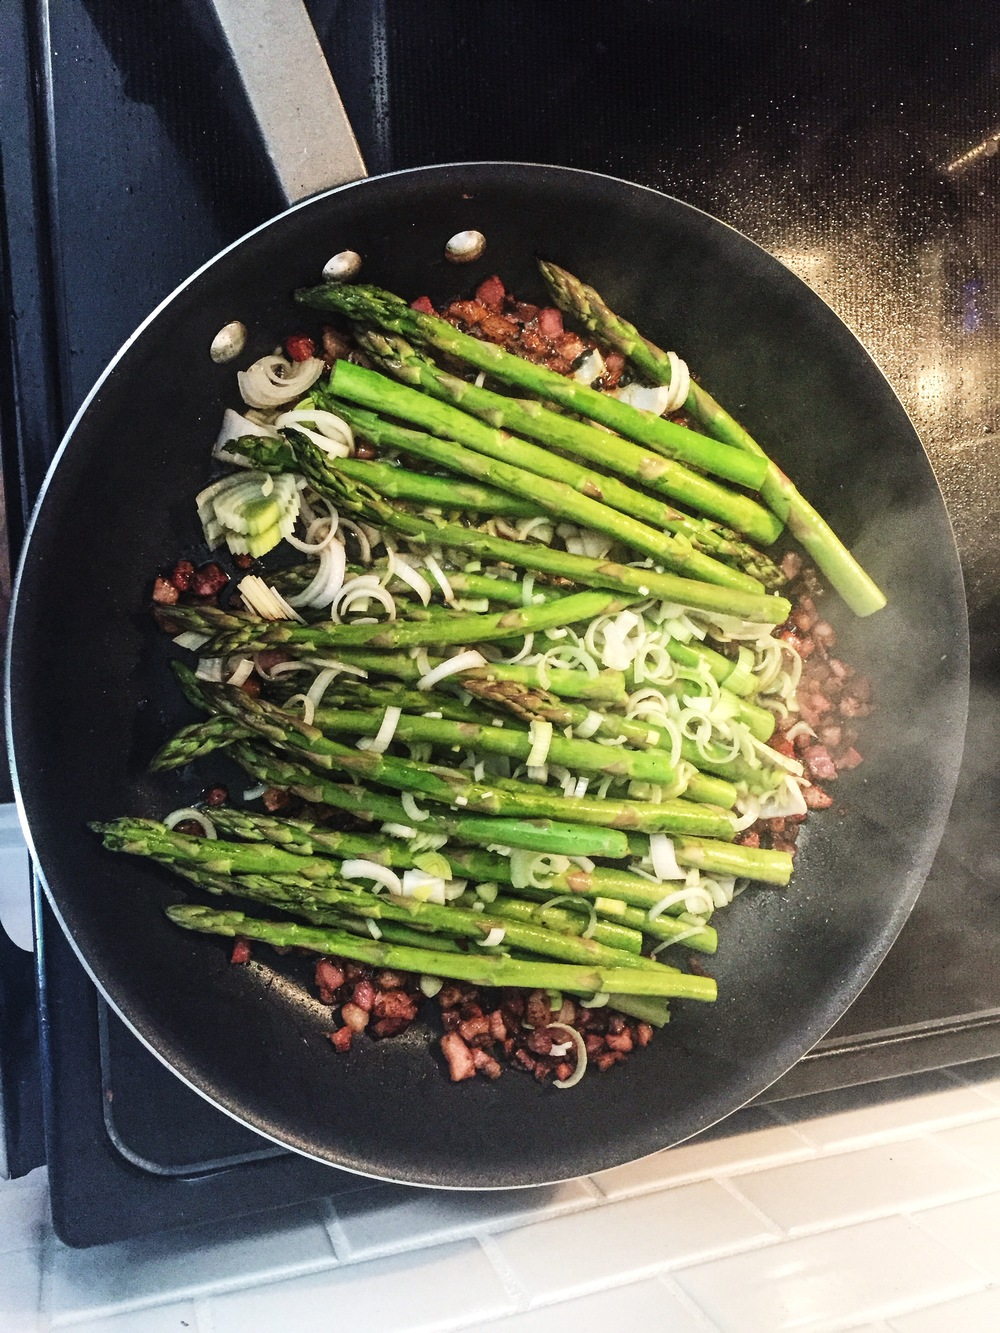 Asparagus is one of those vegetables I would always hesitate to touch; now it's a side staple